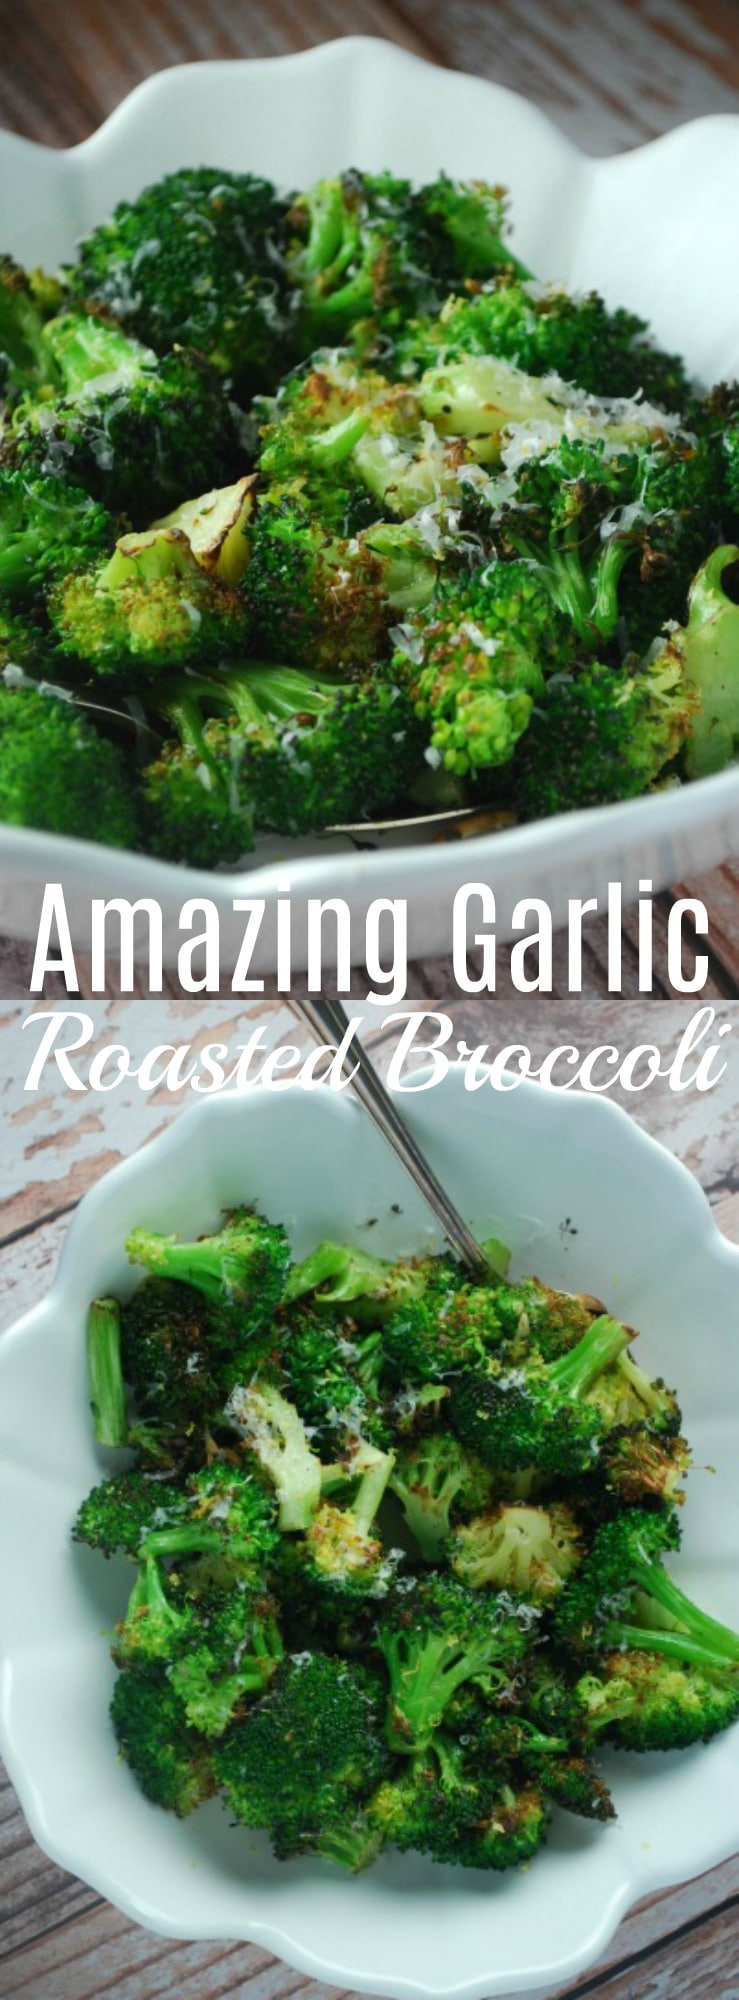 This simple roasted broccoli makes a fantastic and easy side dish that your family will love! Pairs great with everything! 